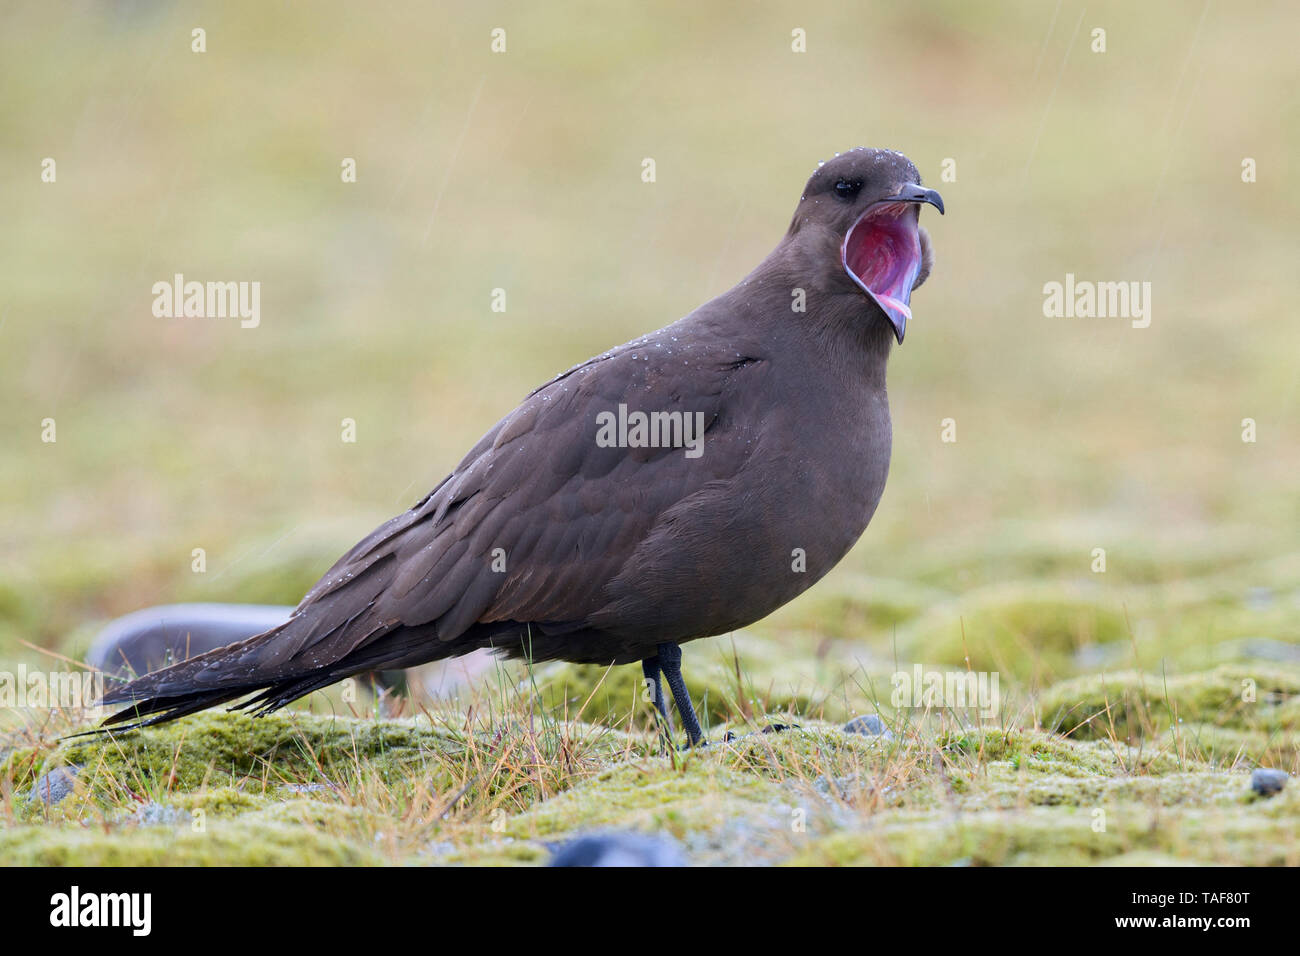 Parasitic Jaeger (Stercorarius parasiticus), dark morph adult standing on the ground with open mouth, Southern Region, Iceland - Stock Image